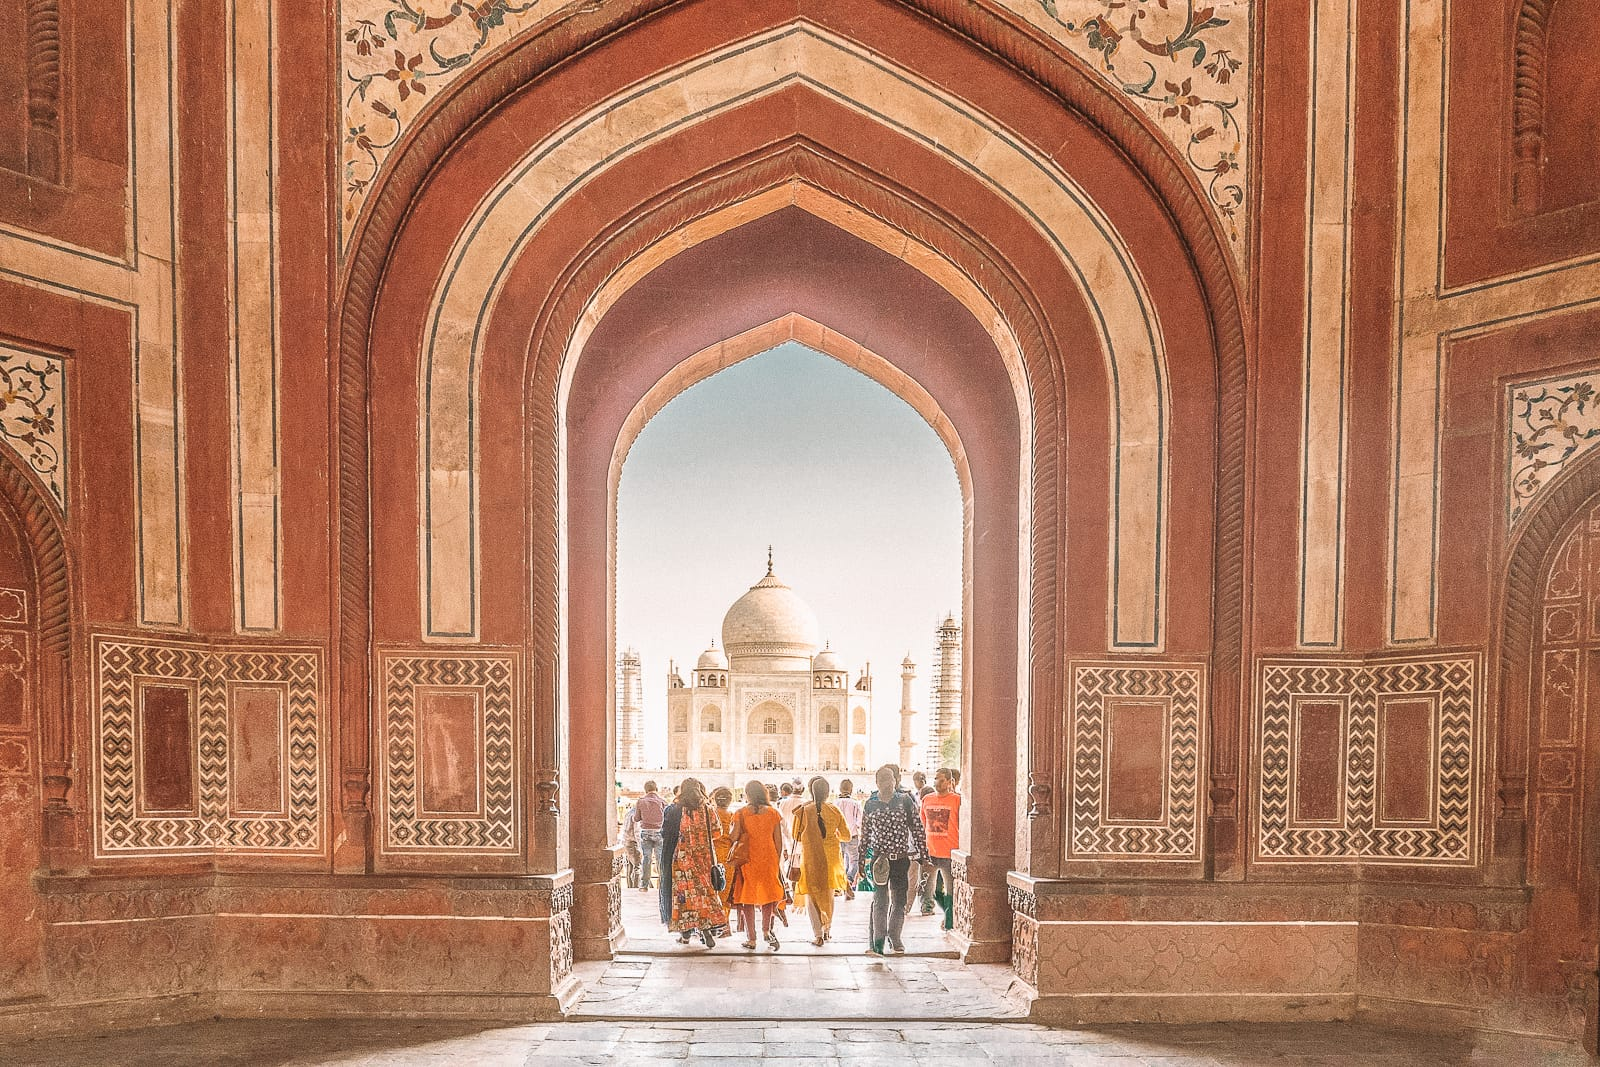 7 of the Best Cities to Visit in India for New Visitors